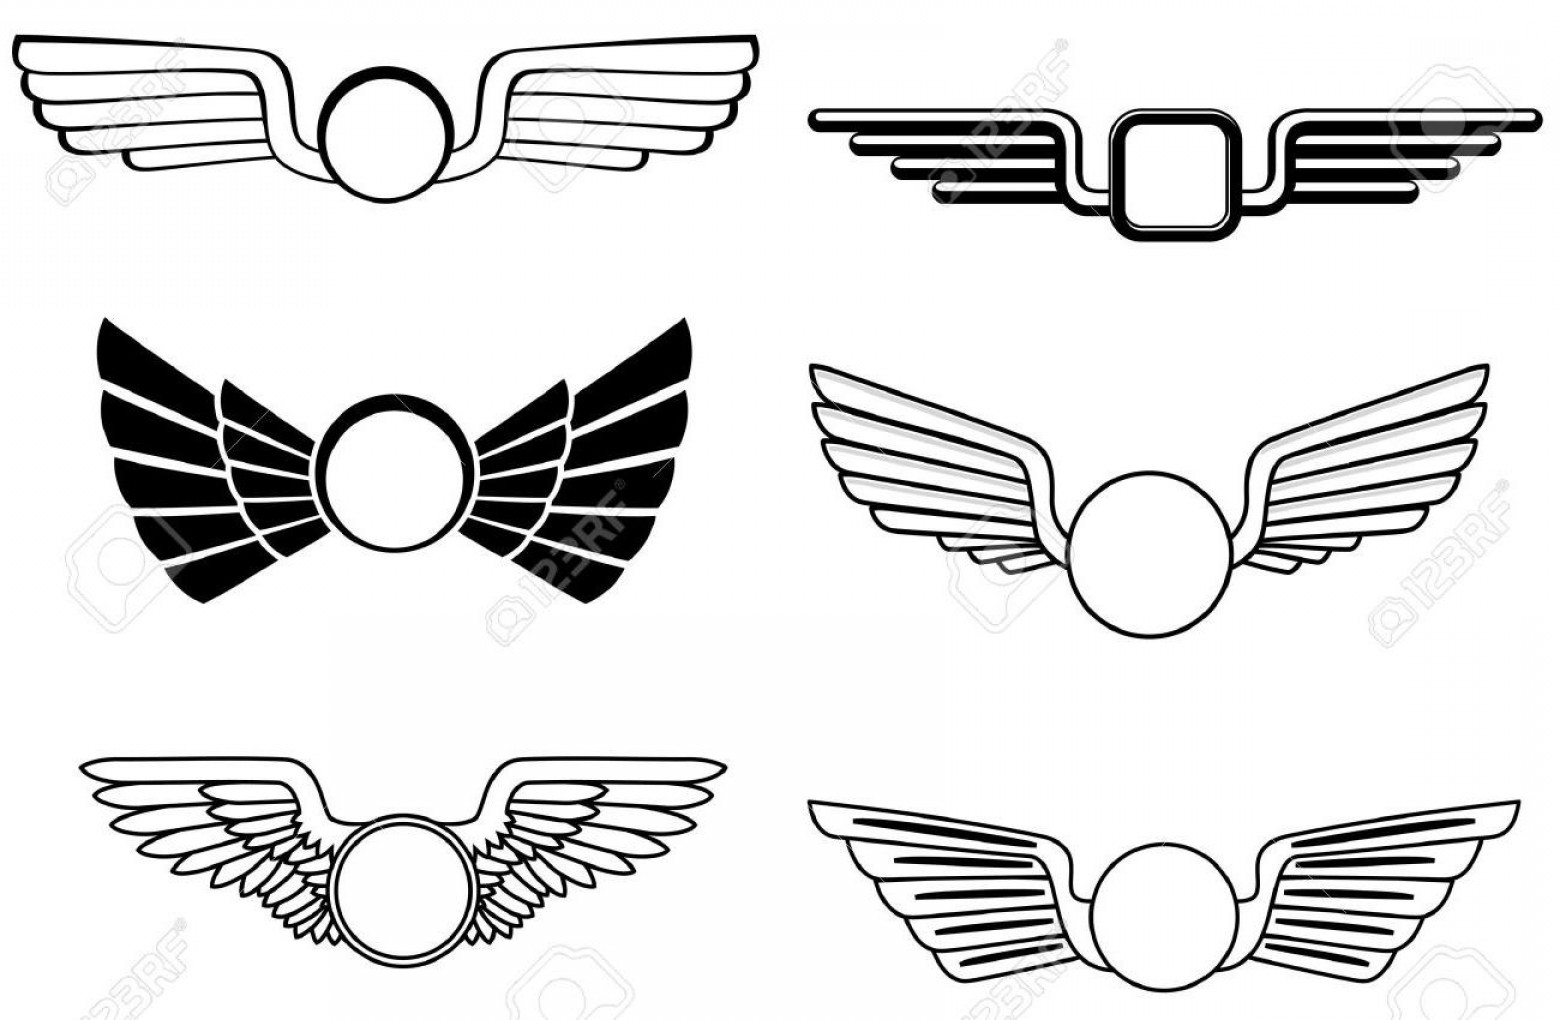 Shield with wings clipart transparent download Military Shield With Wings Vector | SOIDERGI transparent download